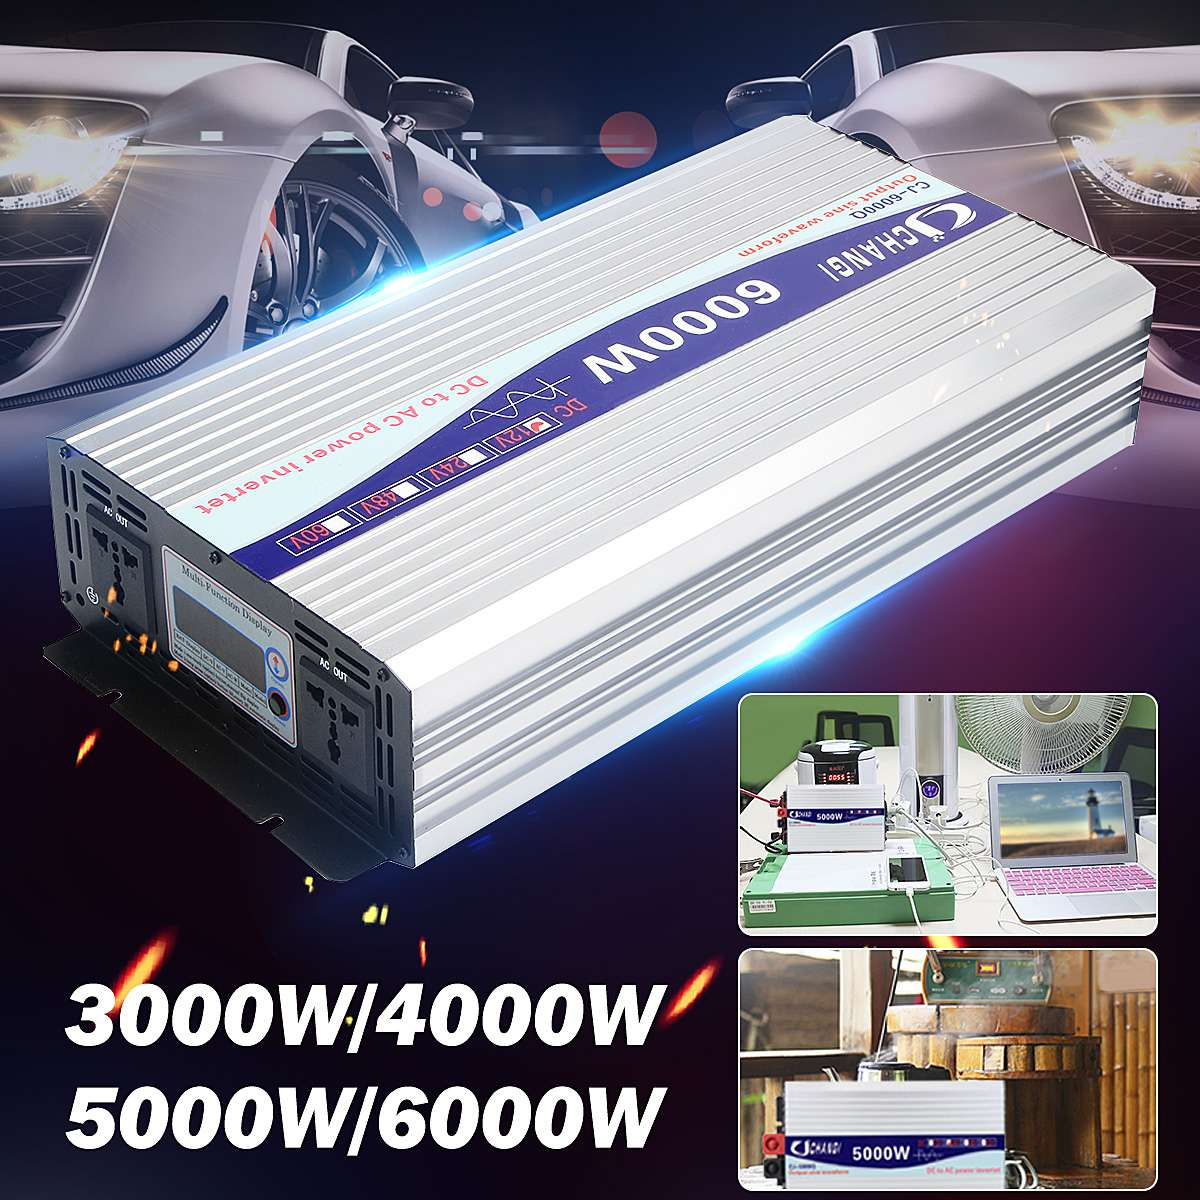 Auto <font><b>Inverter</b></font> 12V <font><b>220V</b></font> 12V Zu <font><b>220V</b></font> Intelligente Spannung transformator 3000/4000/5000/6000W Rein Sinus Solar Power <font><b>Inverter</b></font> image